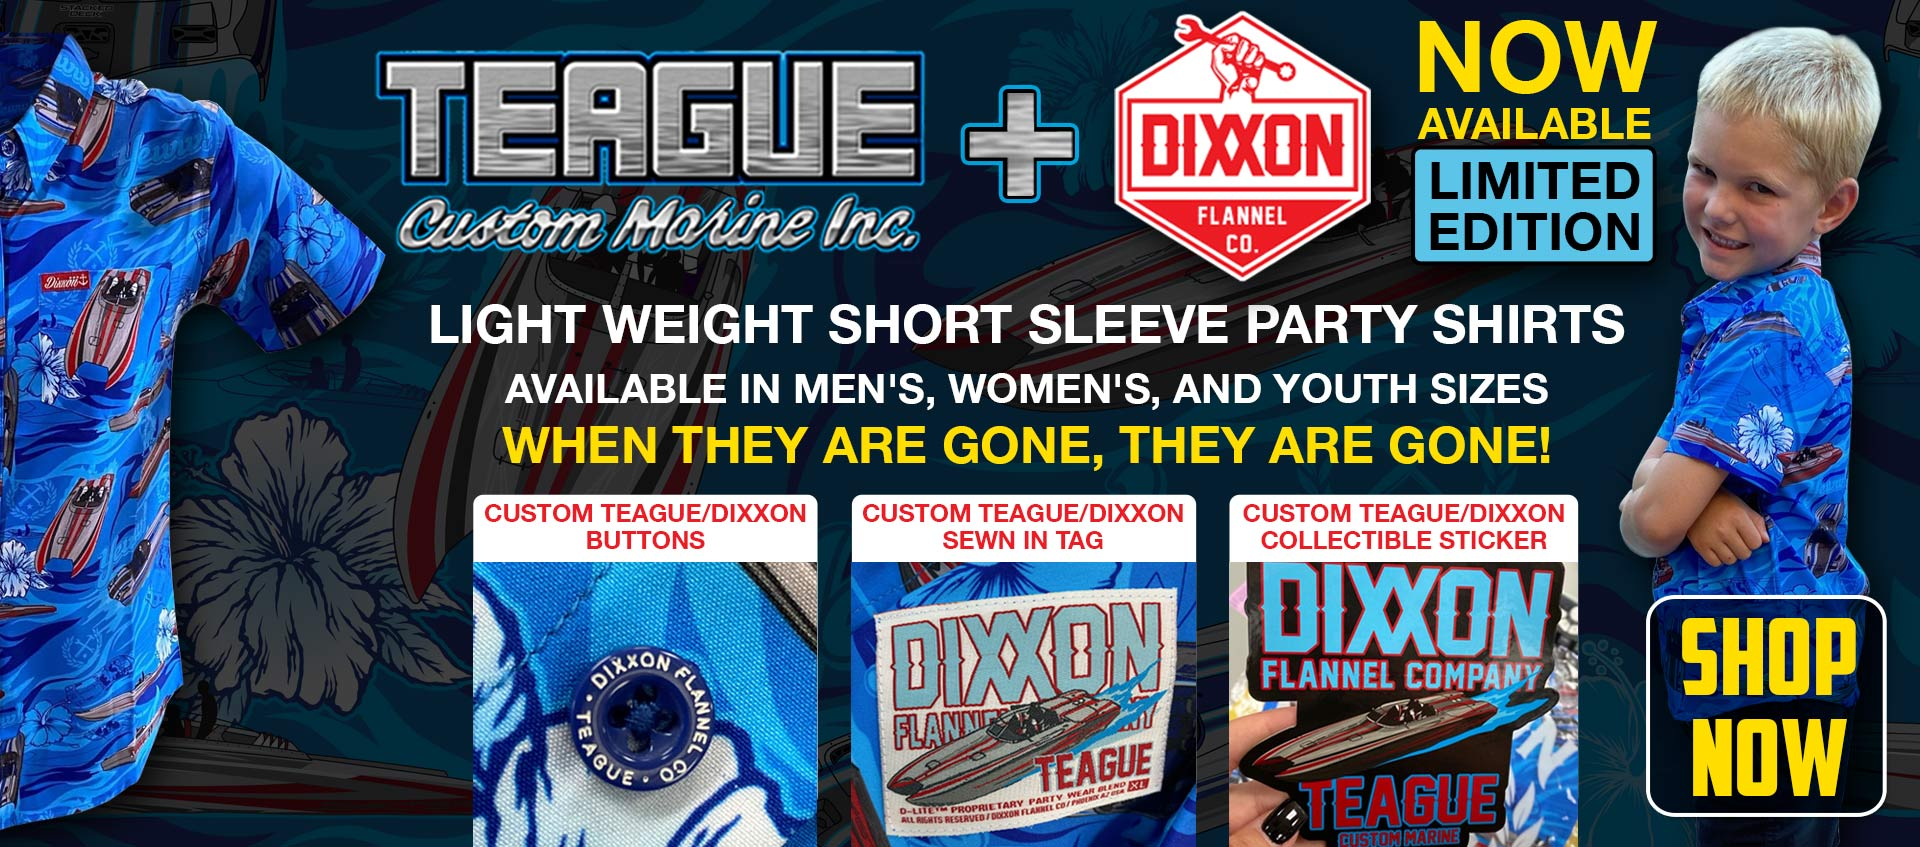 New Exclusive Dixxon/Teague Party Shirts Now Available